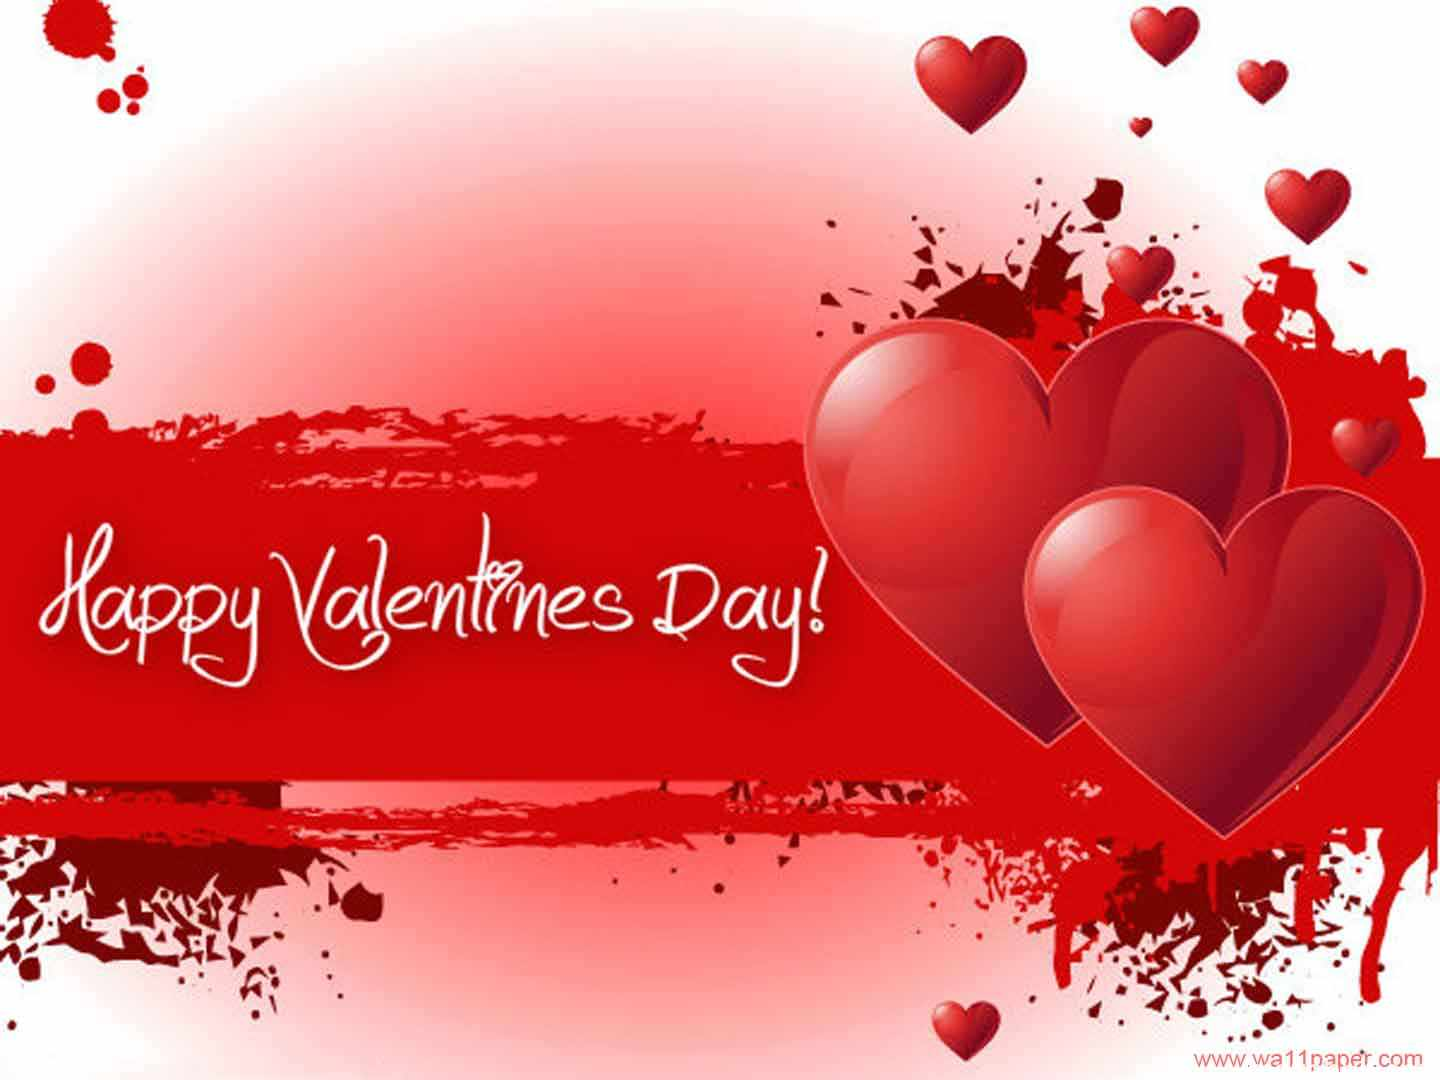 Valentine-Day-2015-Greetings.jpg